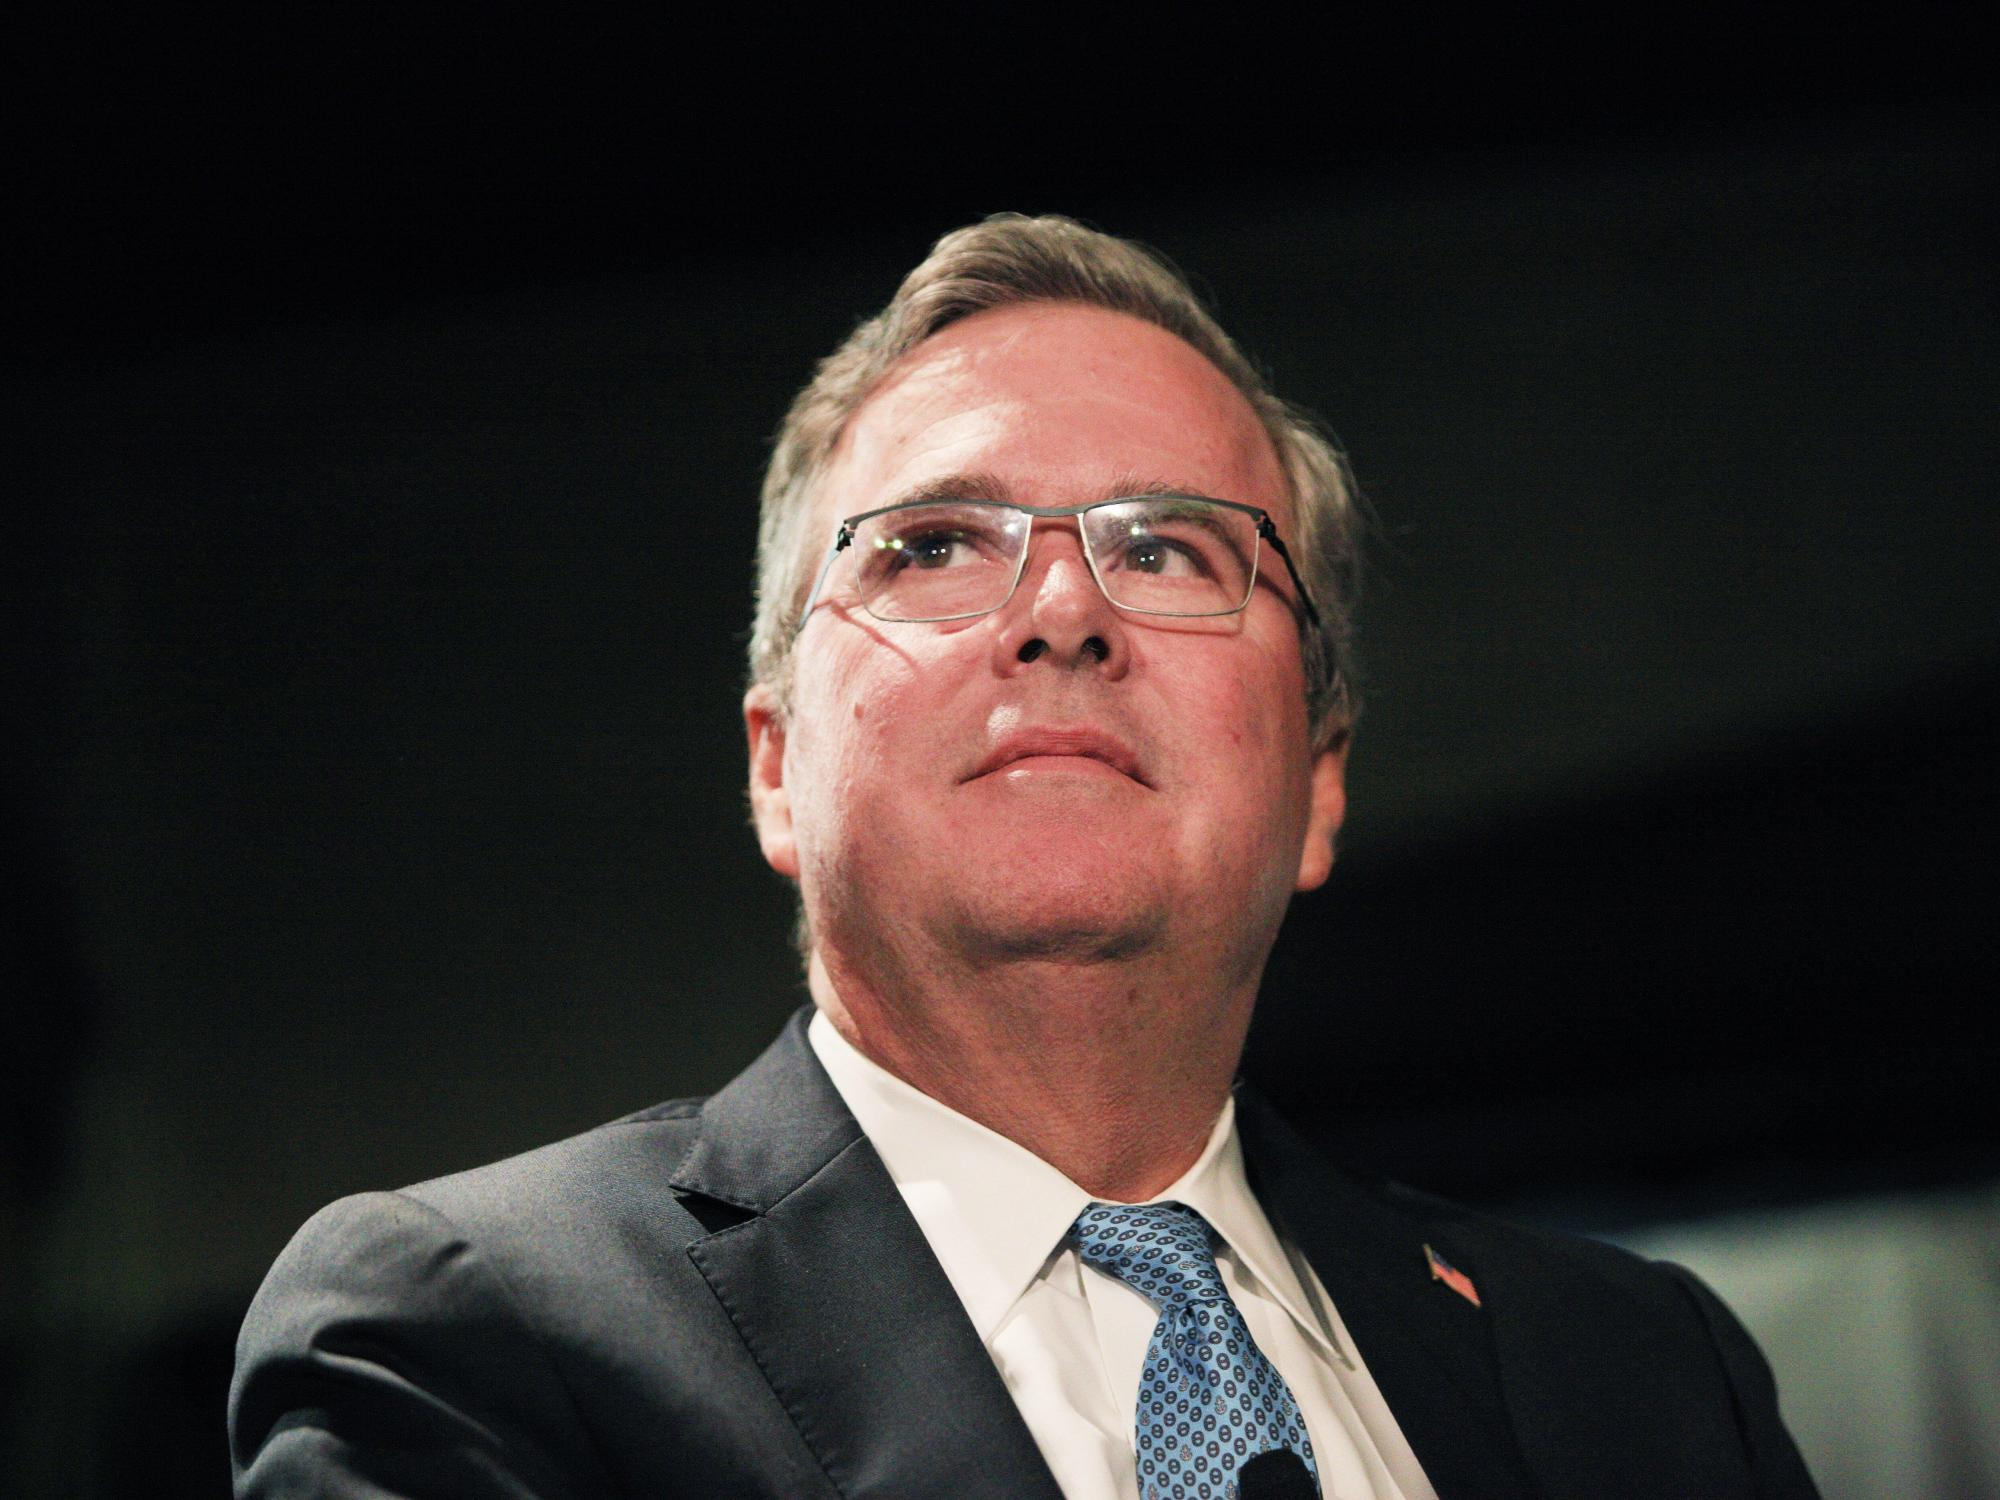 Jeb-Bush-Gives-Revealing-Interview